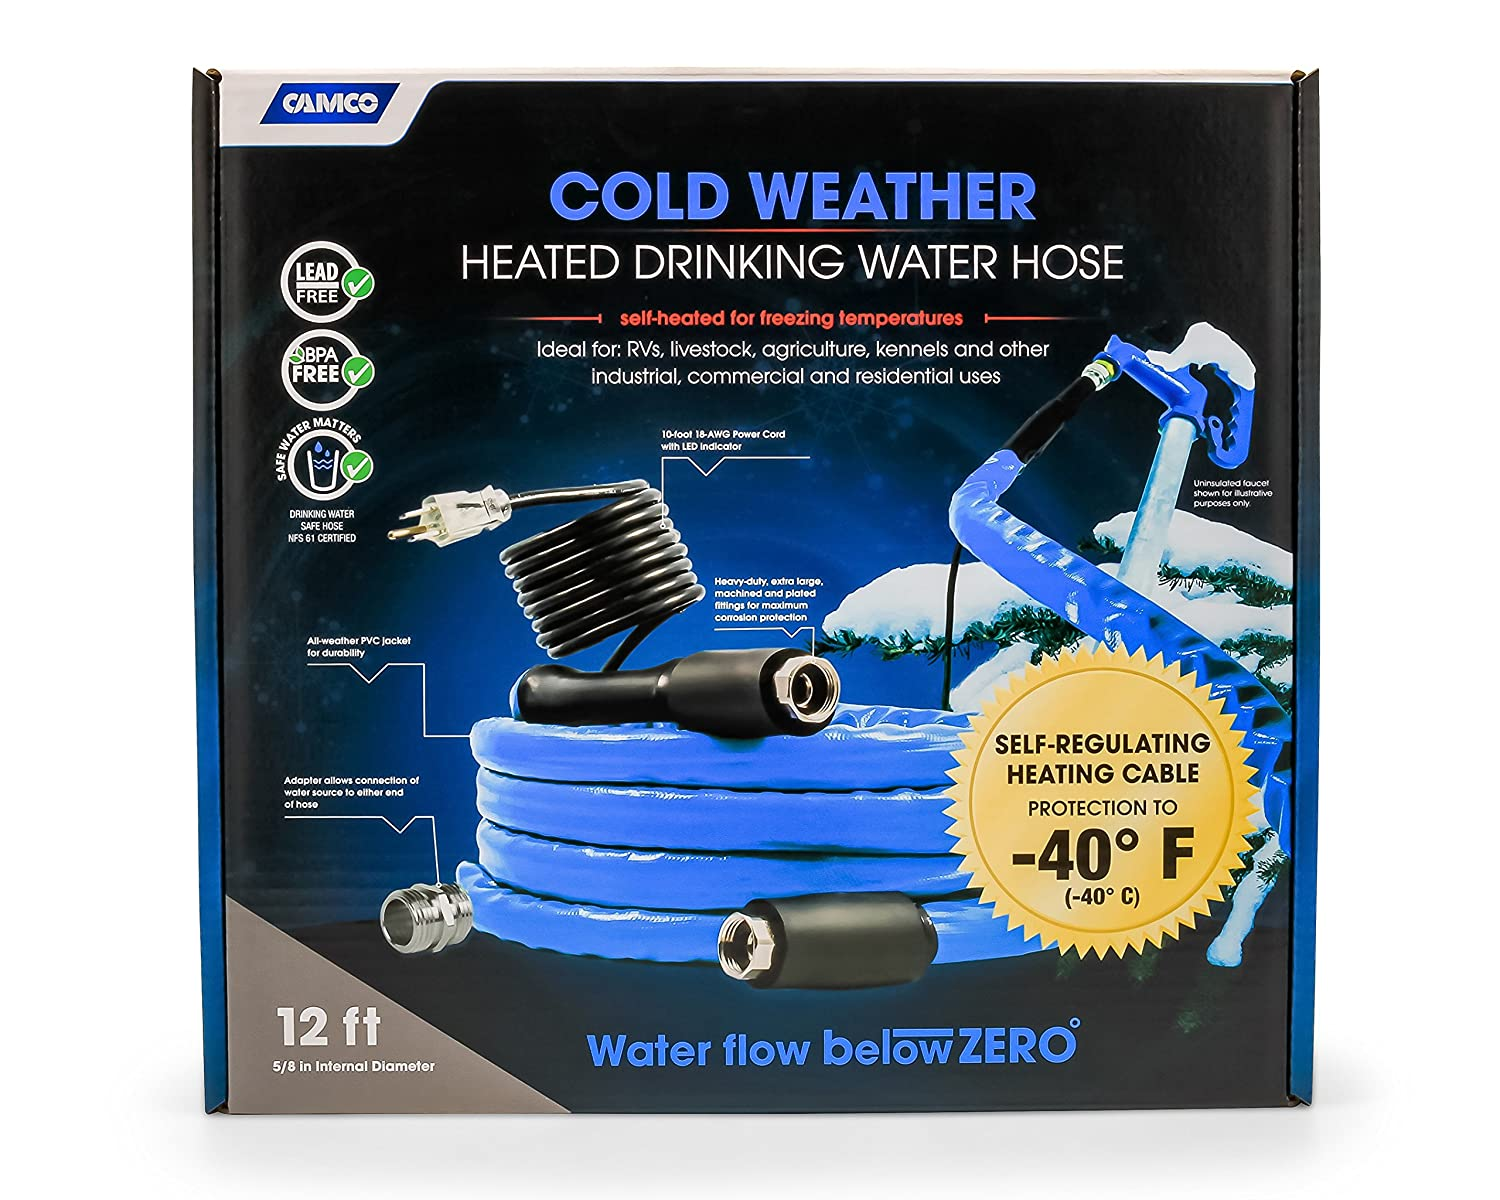 Amazon.com: Camco 12ft Cold Weather Heated Drinking Water Hose Can  Withstand Temperatures Down to -40°F/C - Lead and BPA Free, Reinforced for  Maximum Kink ...